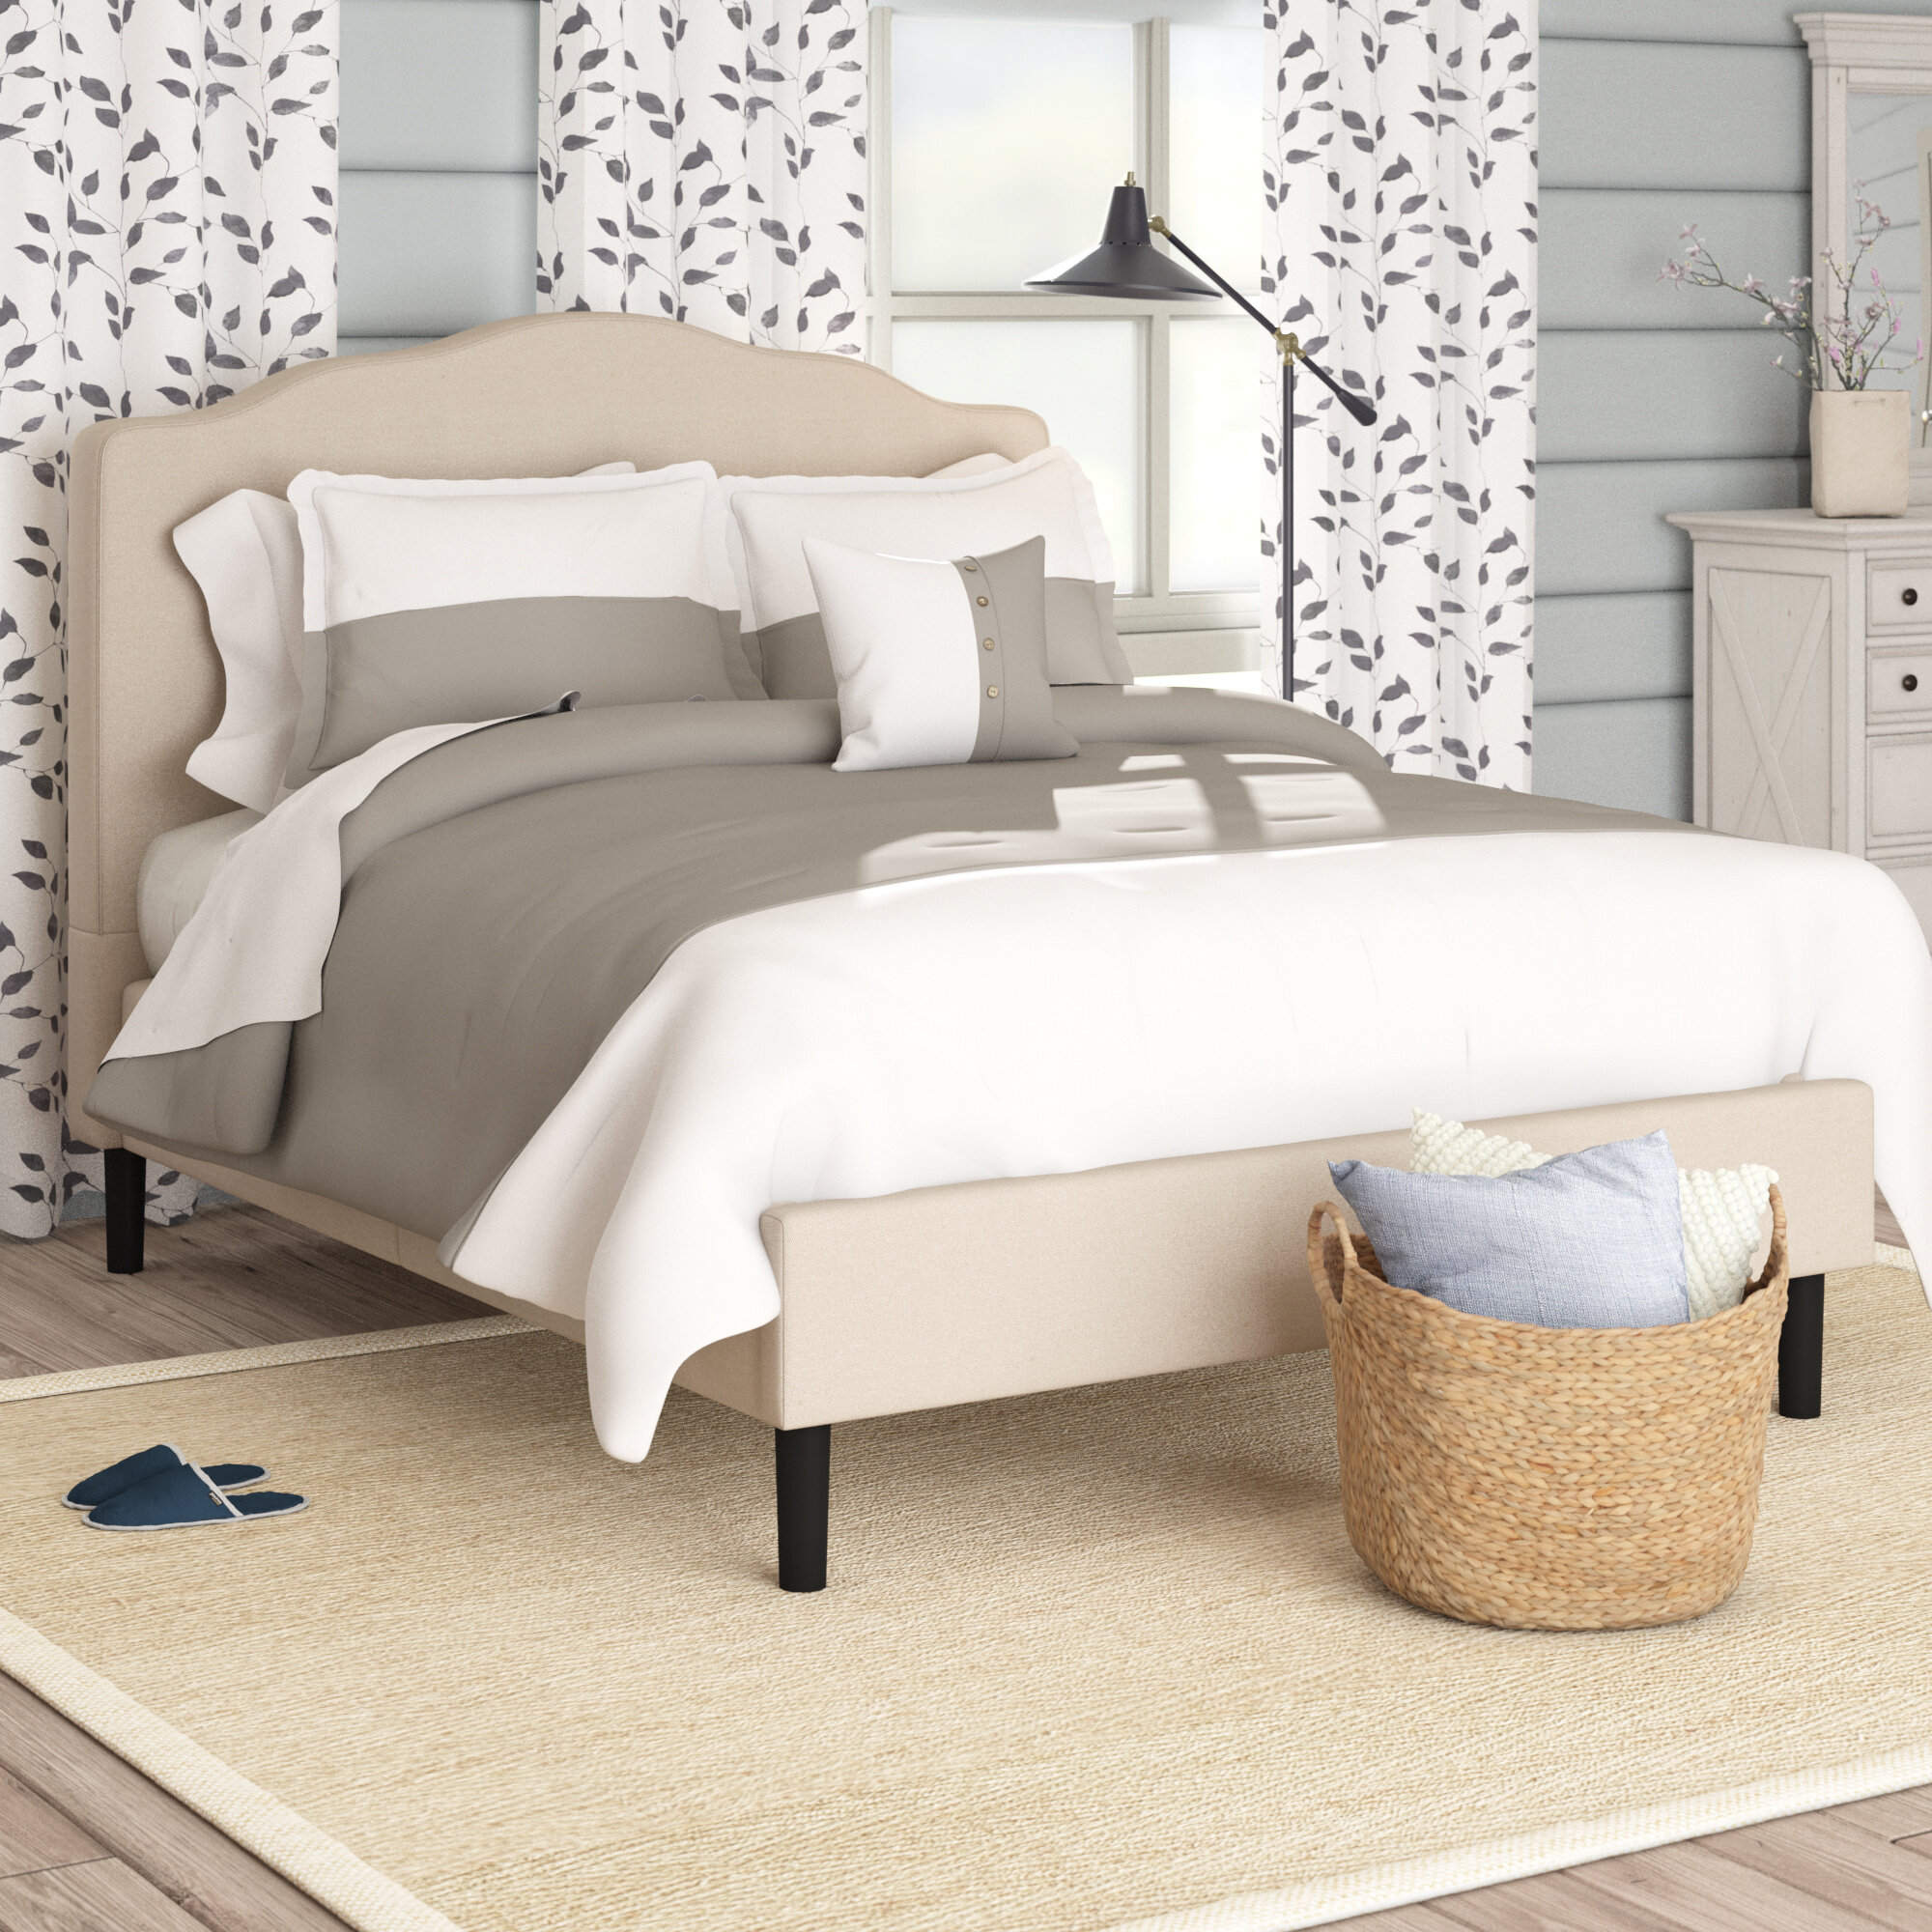 4a56eca49a Laurel Foundry Modern Farmhouse Hoopeston Scalloped Upholstered Platform Bed  & Reviews | Wayfair